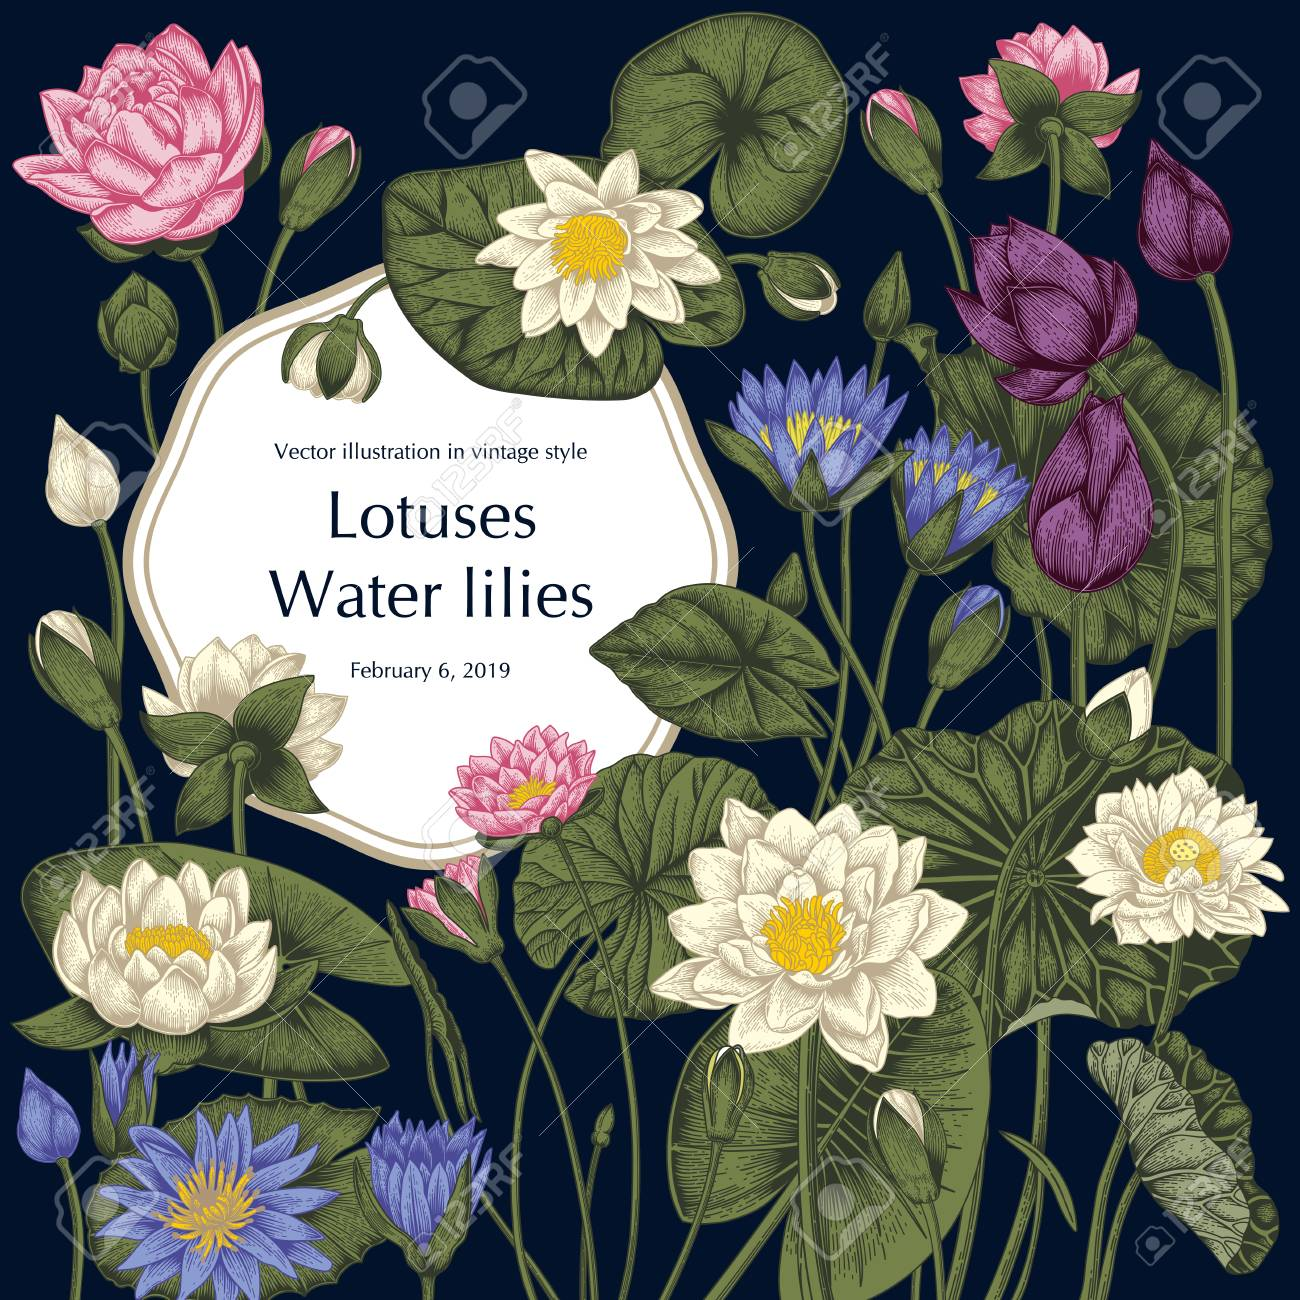 Lotus and water lilies, Water plants. Vector illustration in vintage style. Vegetable drawing. - 122106718